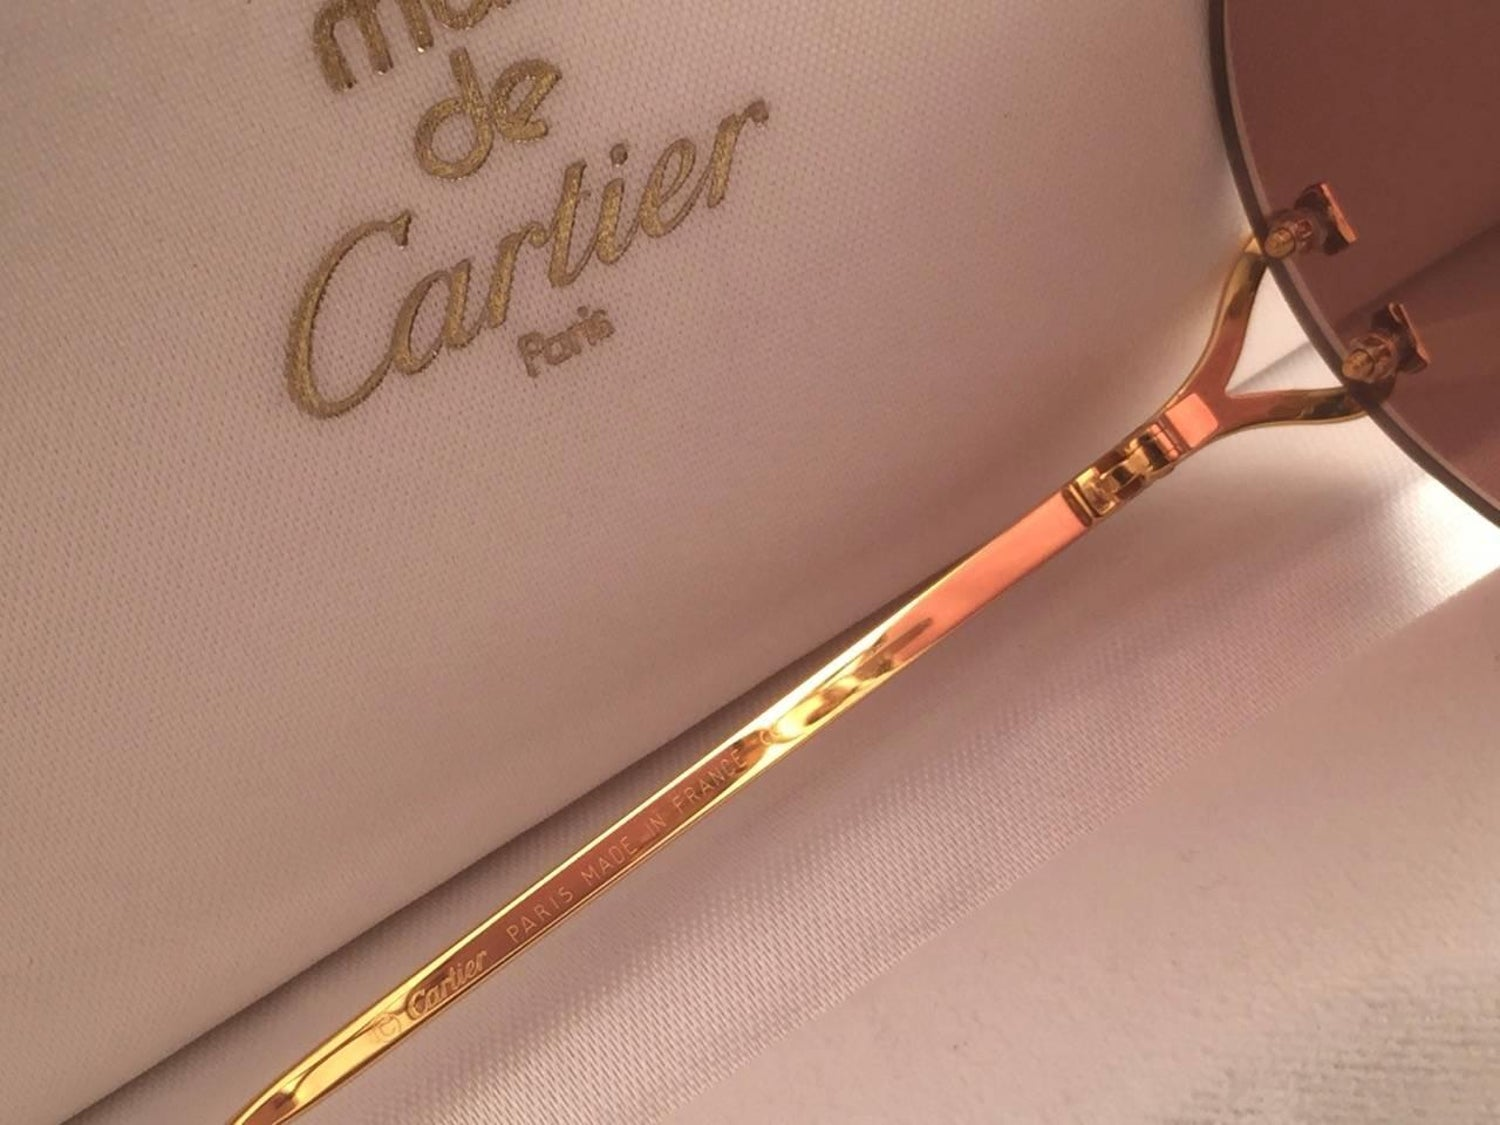 eea3dce3d90 New Cartier Madison Round Rimless Gold 50mm Brown Lens France Sunglasses at  1stdibs